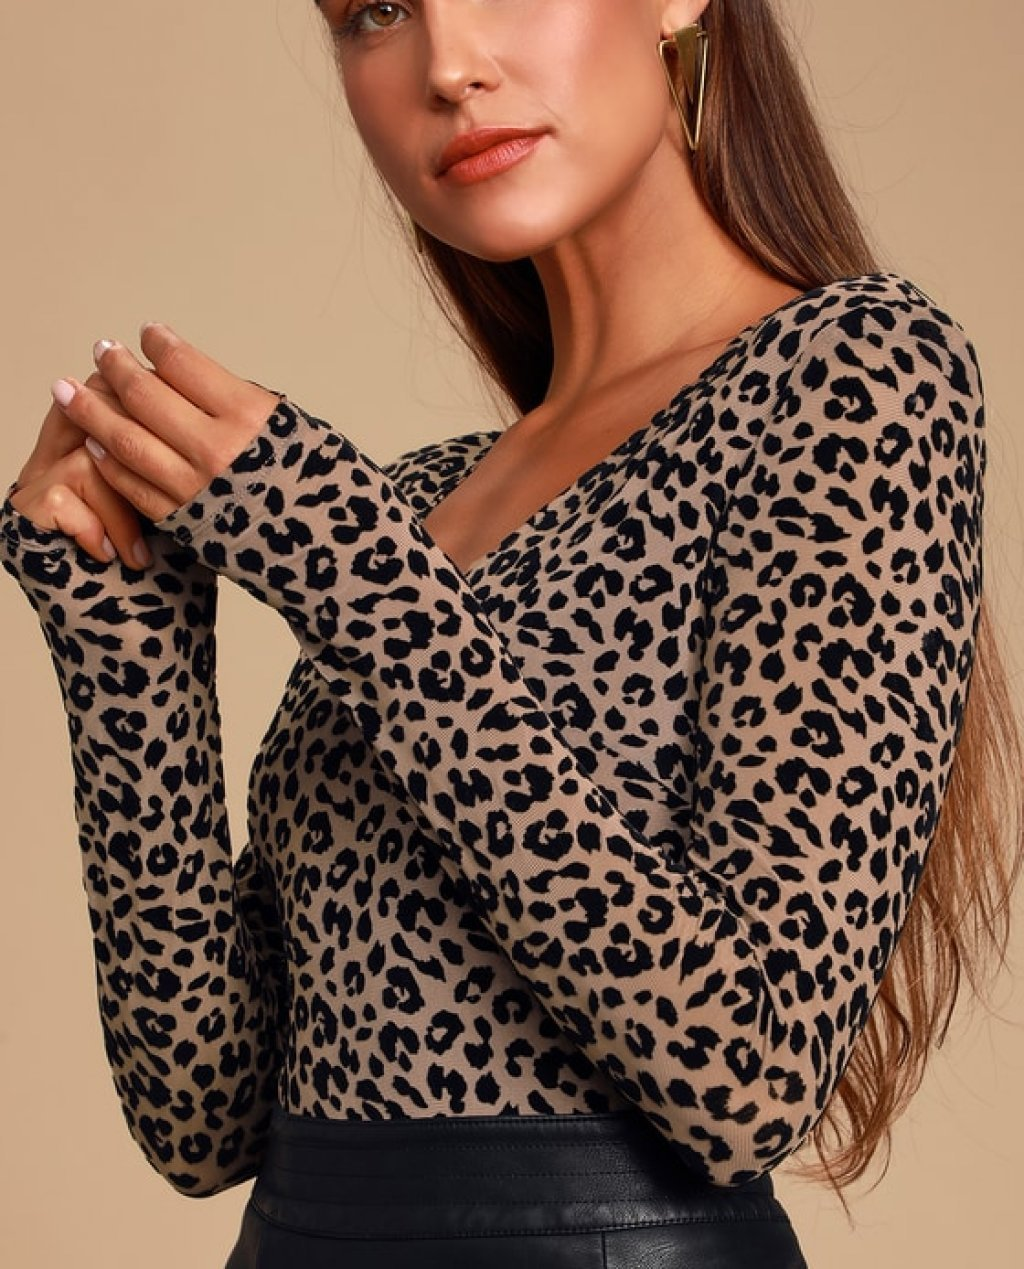 Inca Black and Nude Leopard Print Mesh Long Sleeve Bodysuit